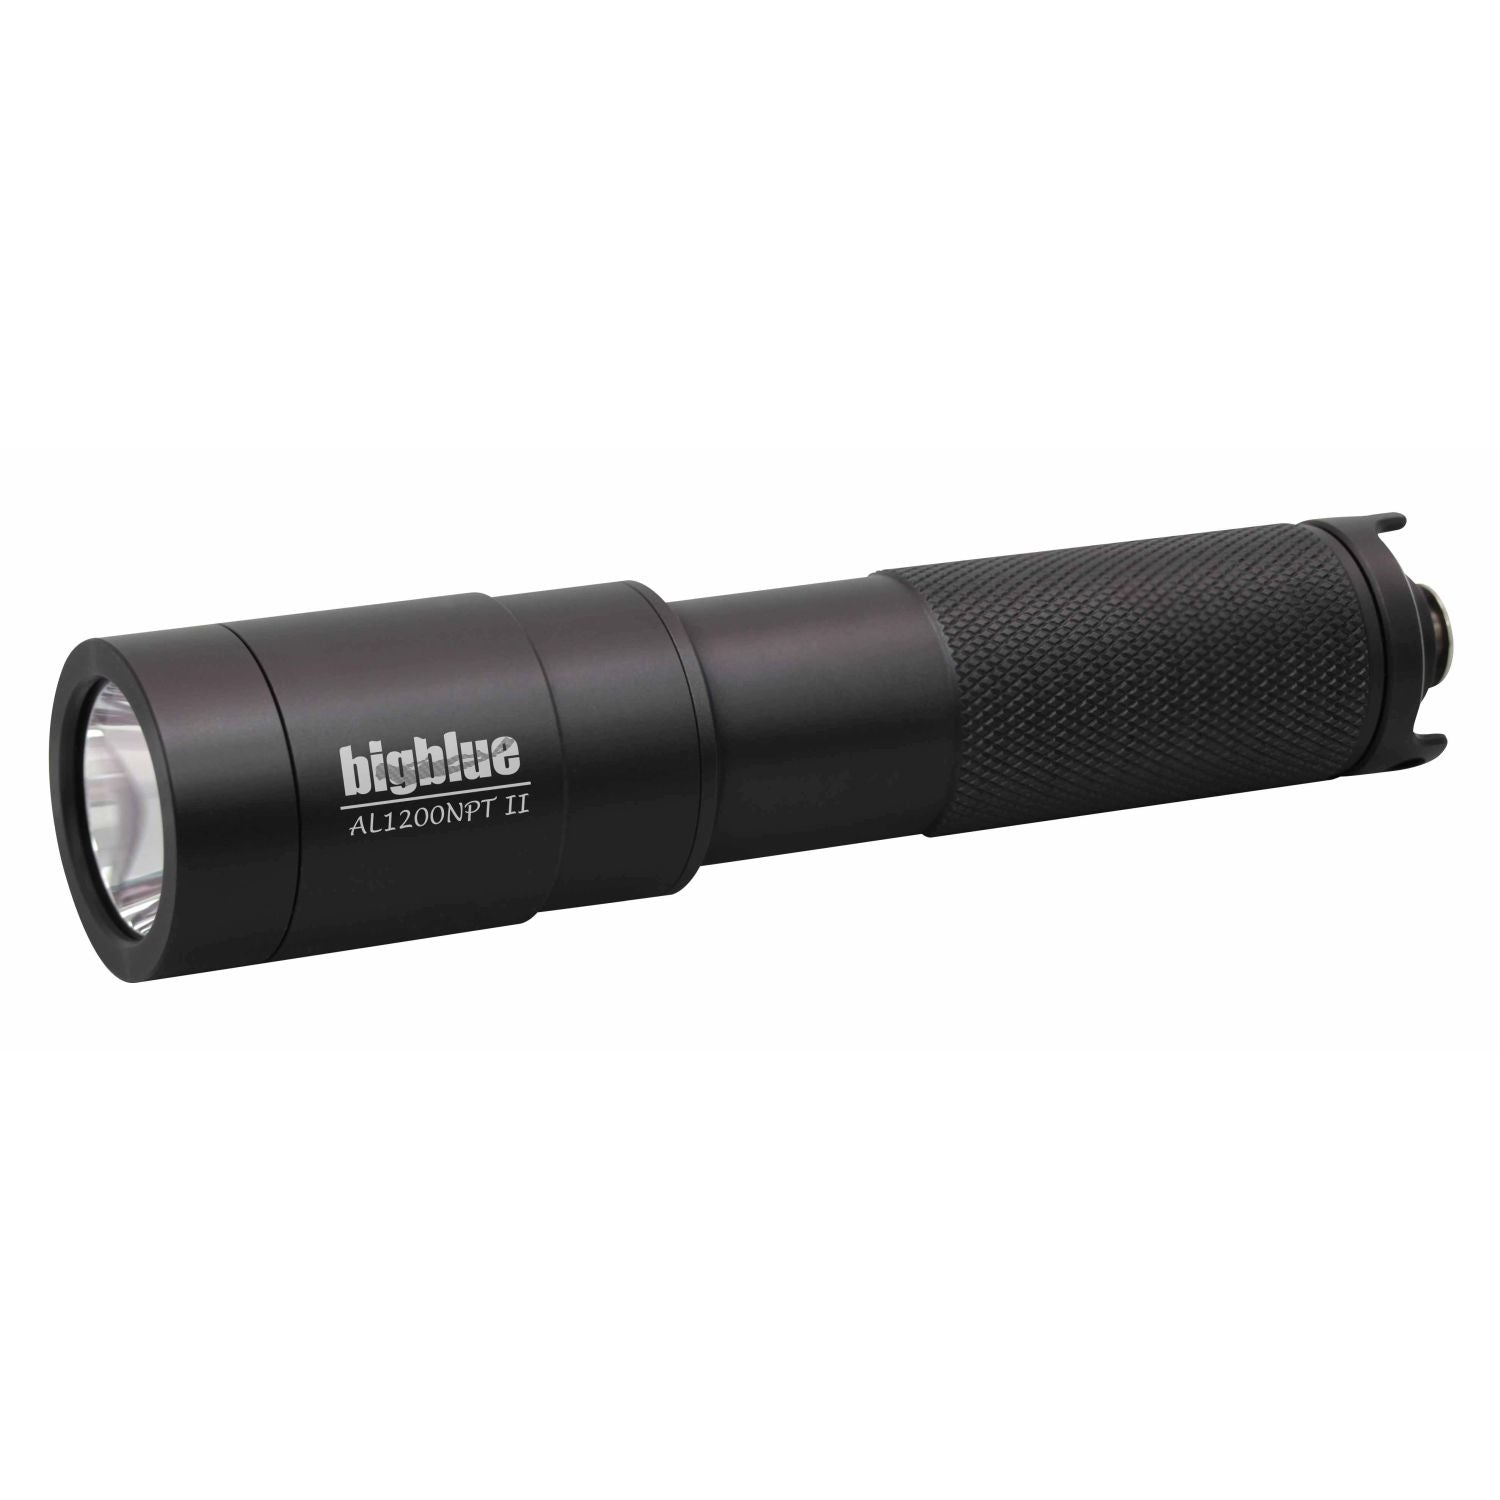 Bigblue AL1200NP Tail II Narrow Beam